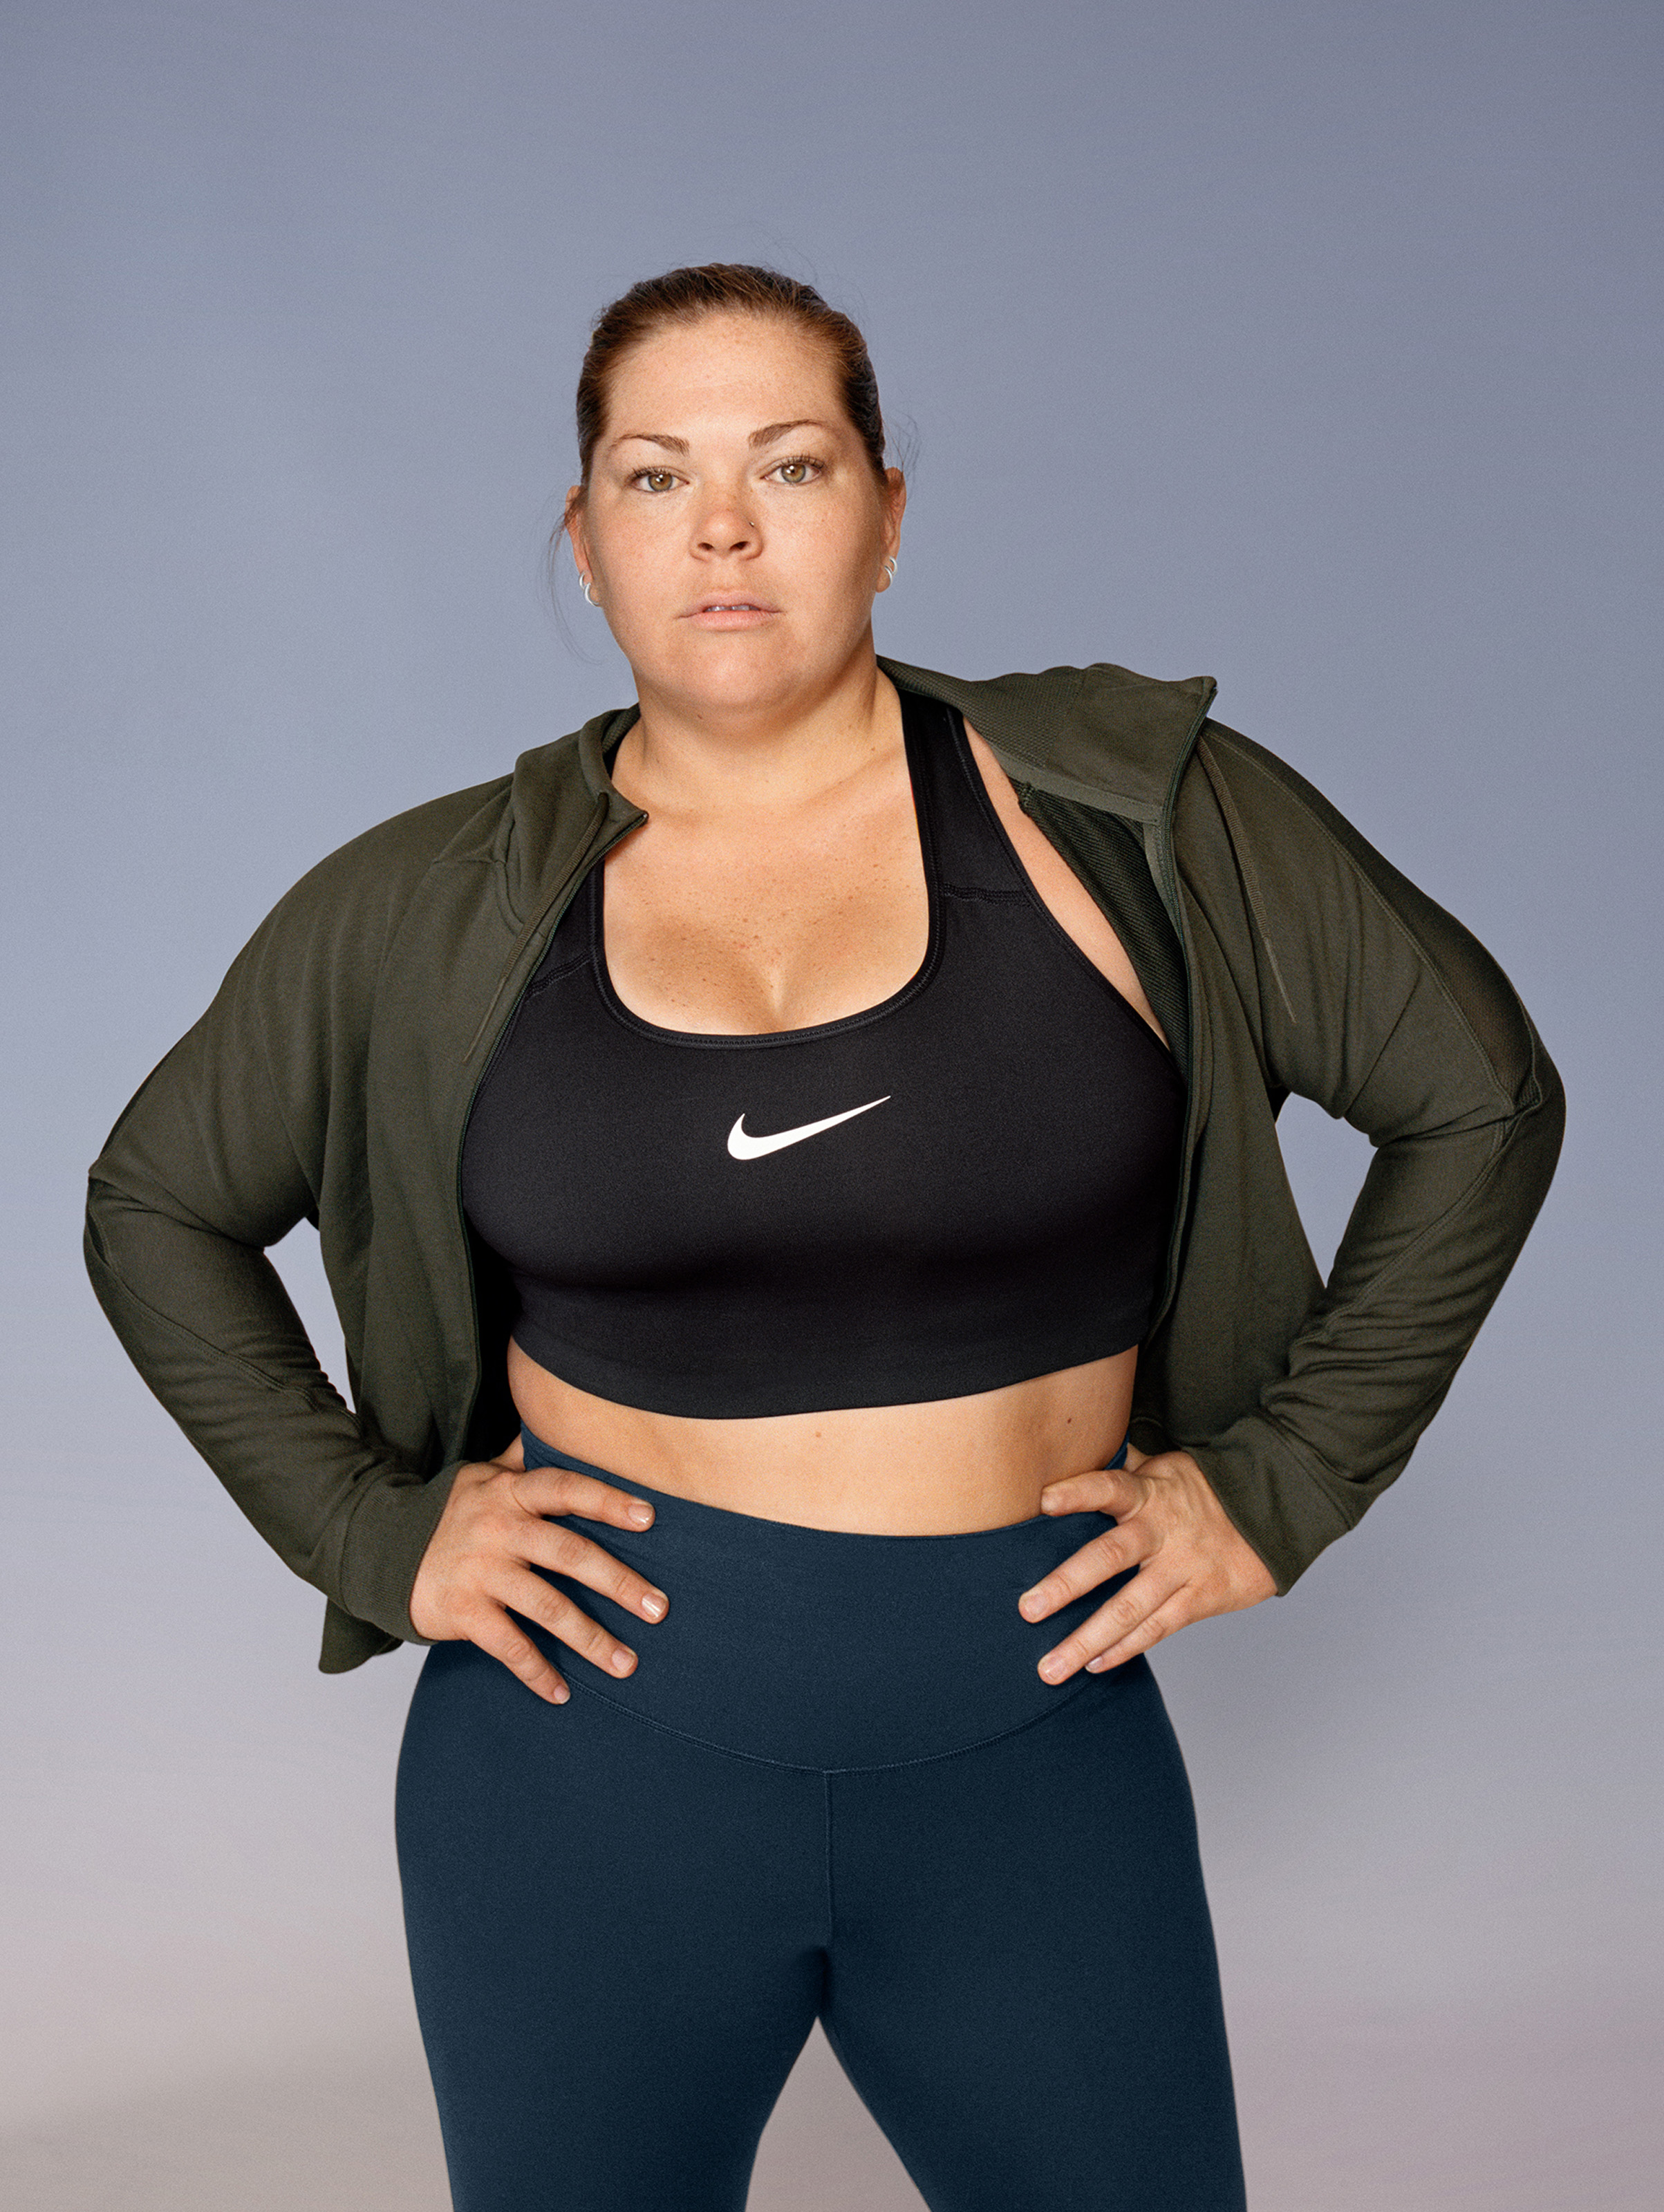 nike plus size collection Amanda Bingson 1 - WearTesters